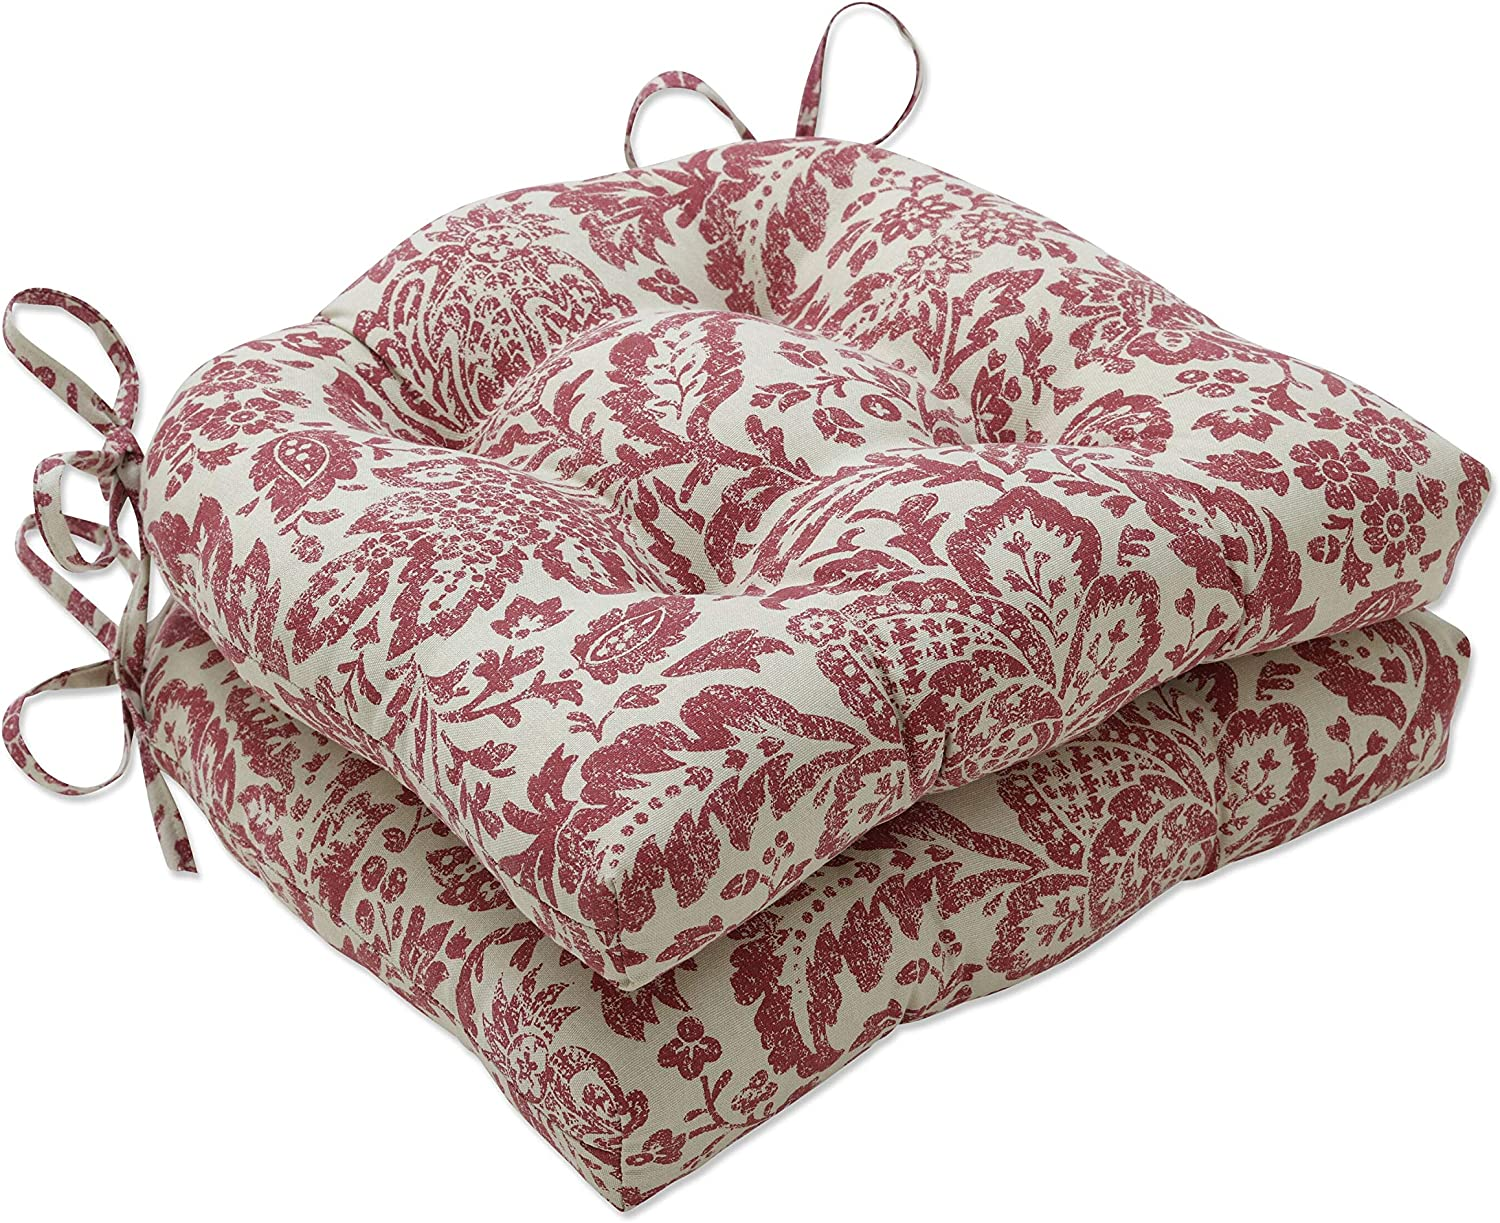 Pillow El Paso Mall Perfect Indoor Fairhaven Red Pad Dealing full price reduction Chair 15.5